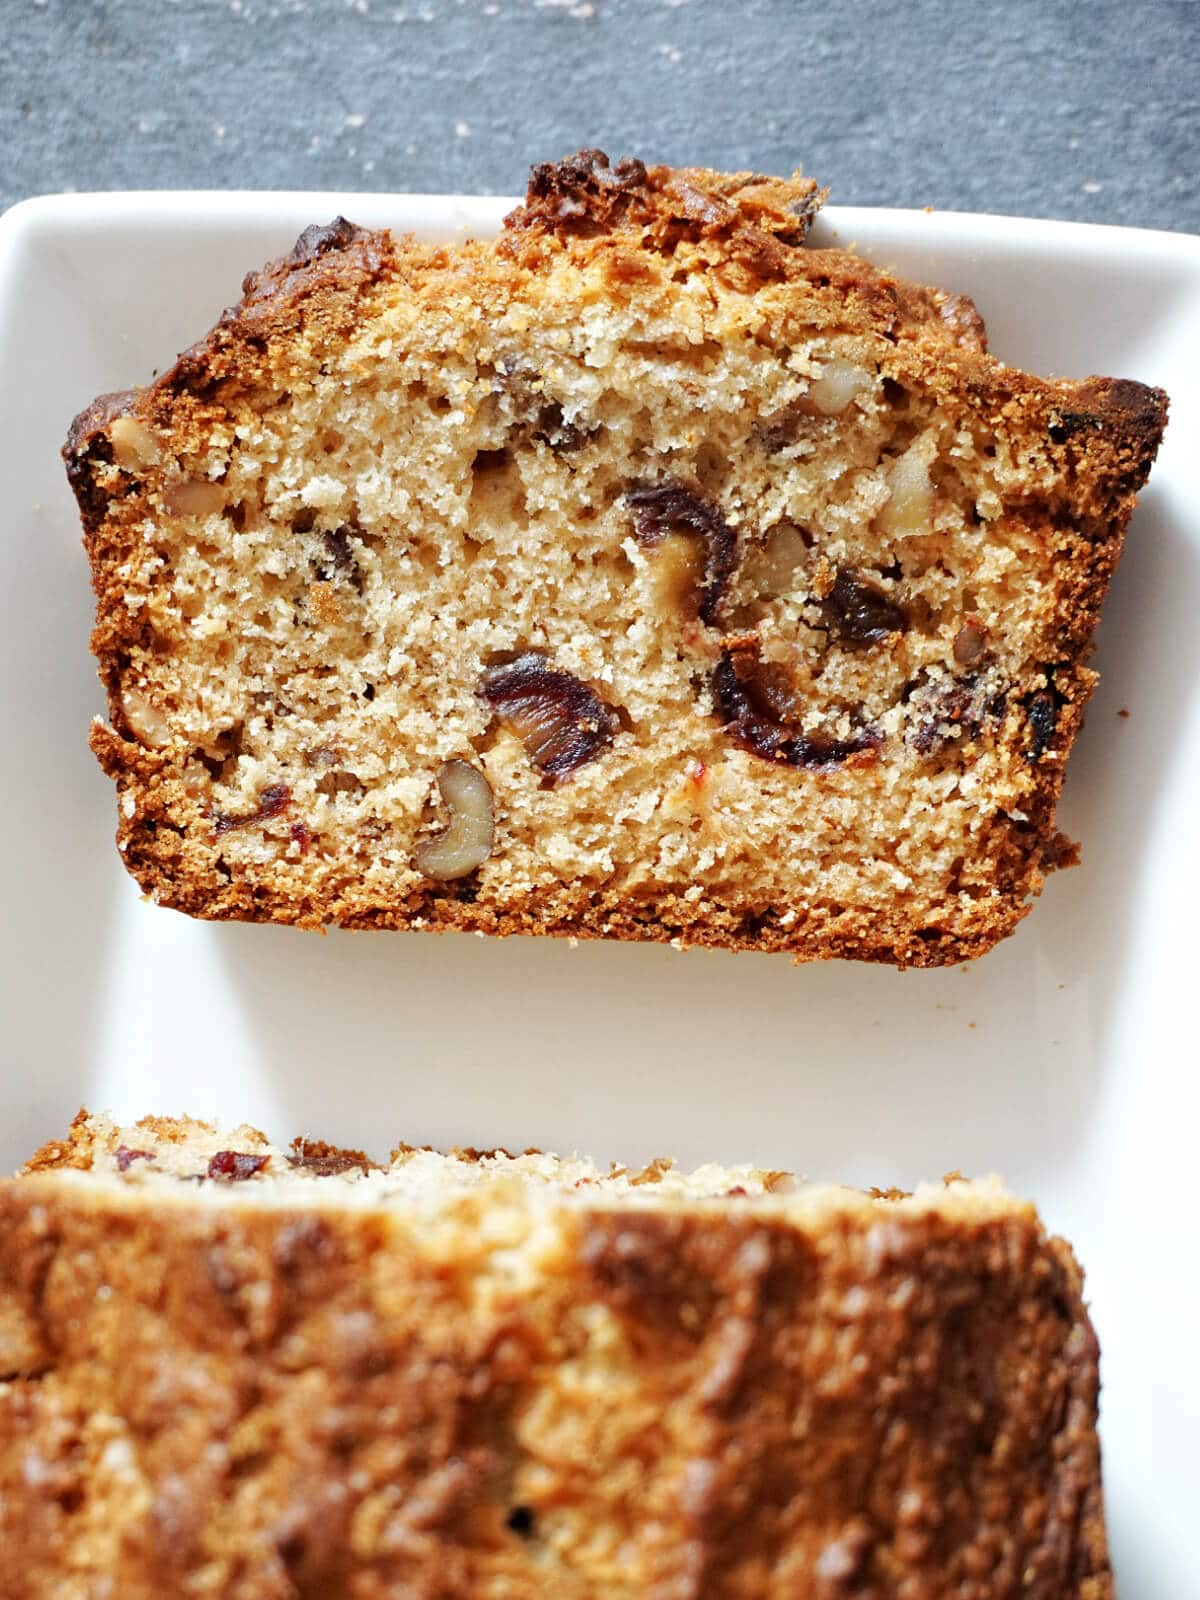 A slice of walnut and date cake on a white plate